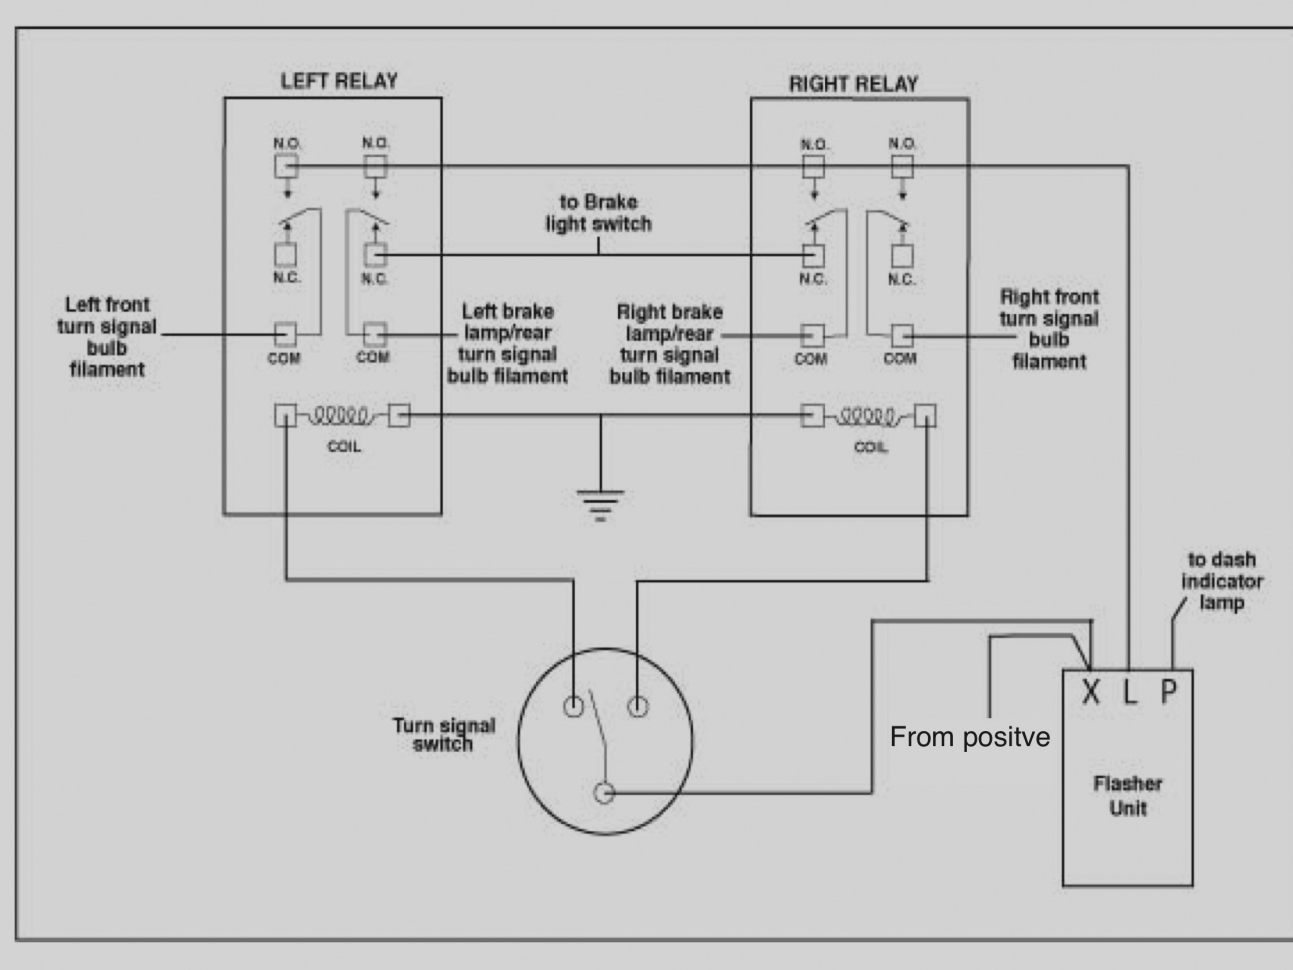 2015 Polaris Ranger Wiring Diagram For Professional Diagrams 2016 570 Rzr 900 Collection